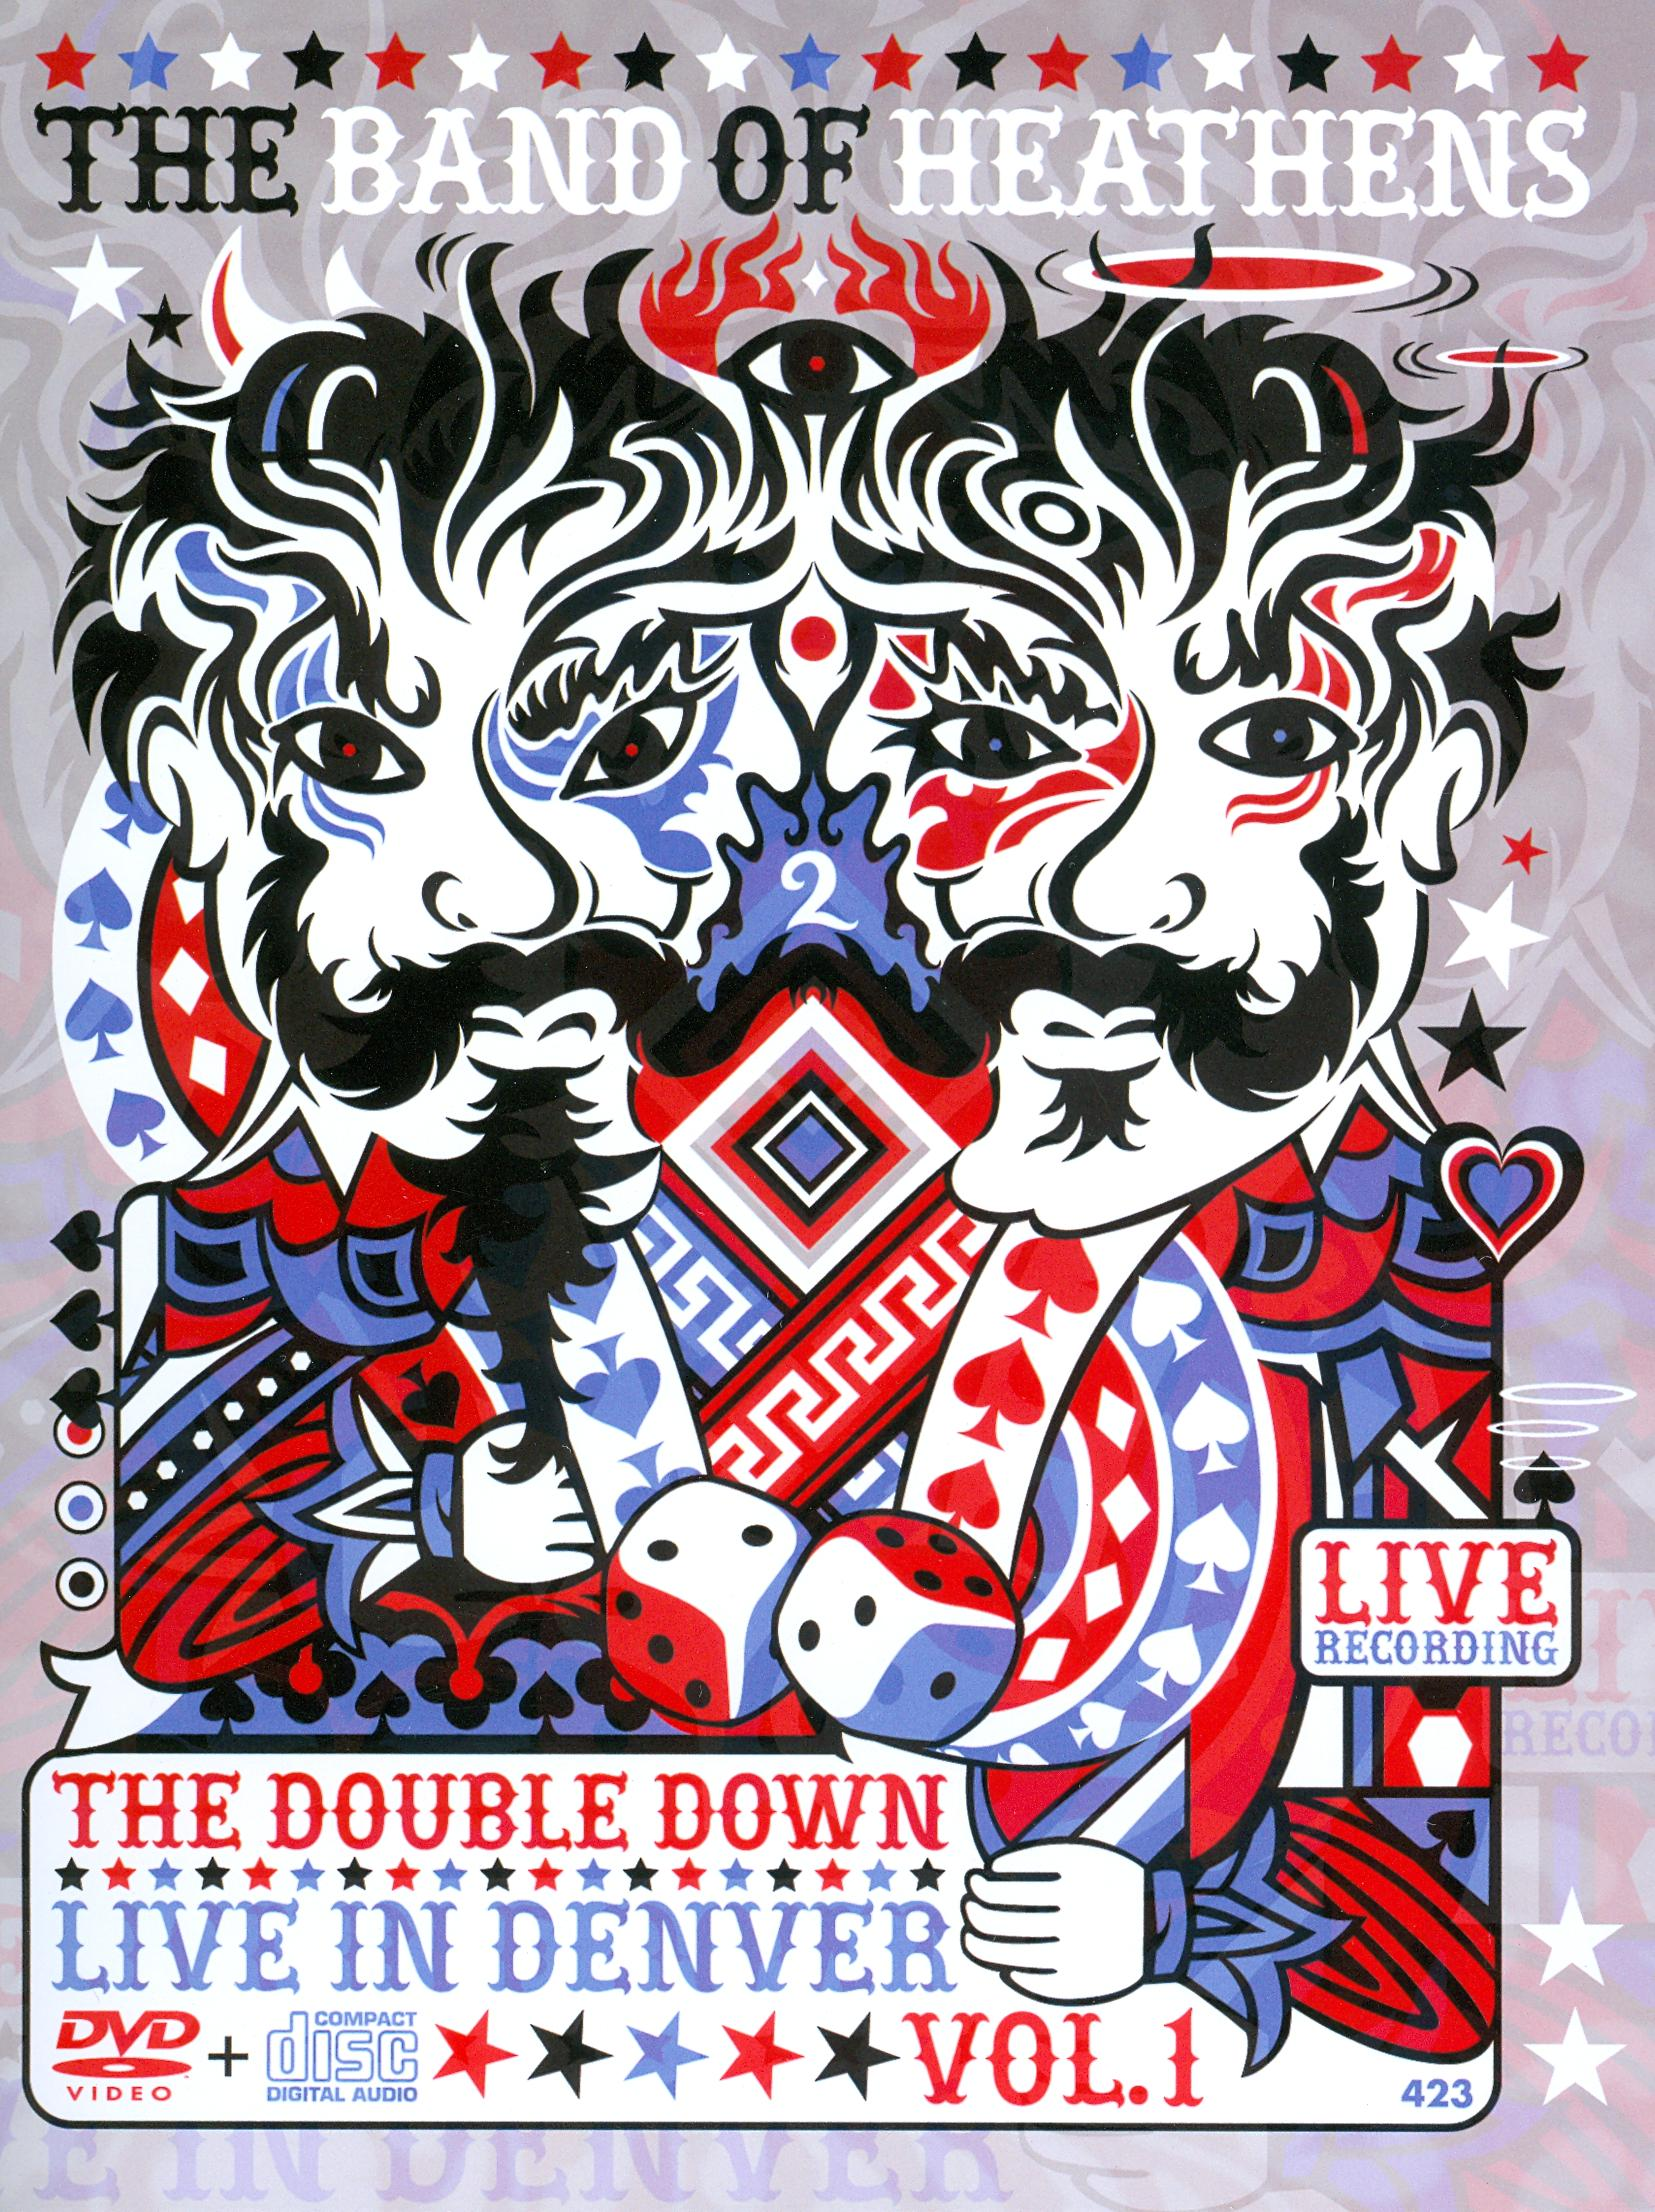 The Band of Heathens: The Double Down - Live in Denver, Vol. 1